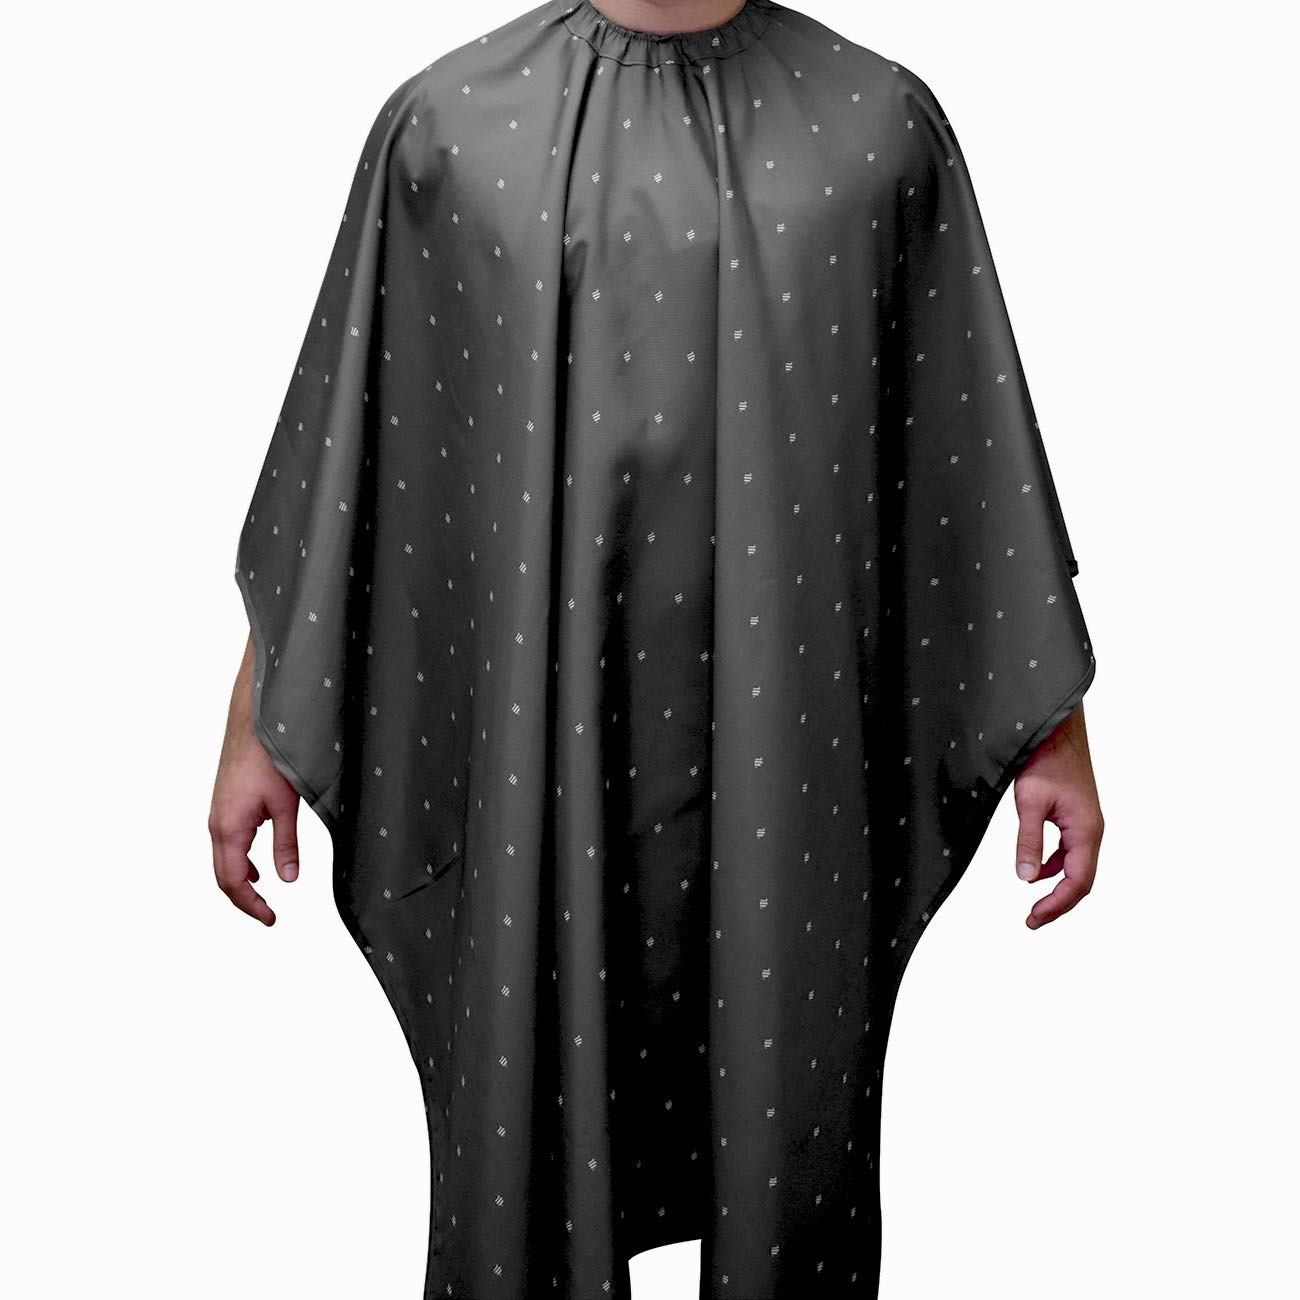 Barber Strong The Barber Cape, Black Shield by Barber Strong